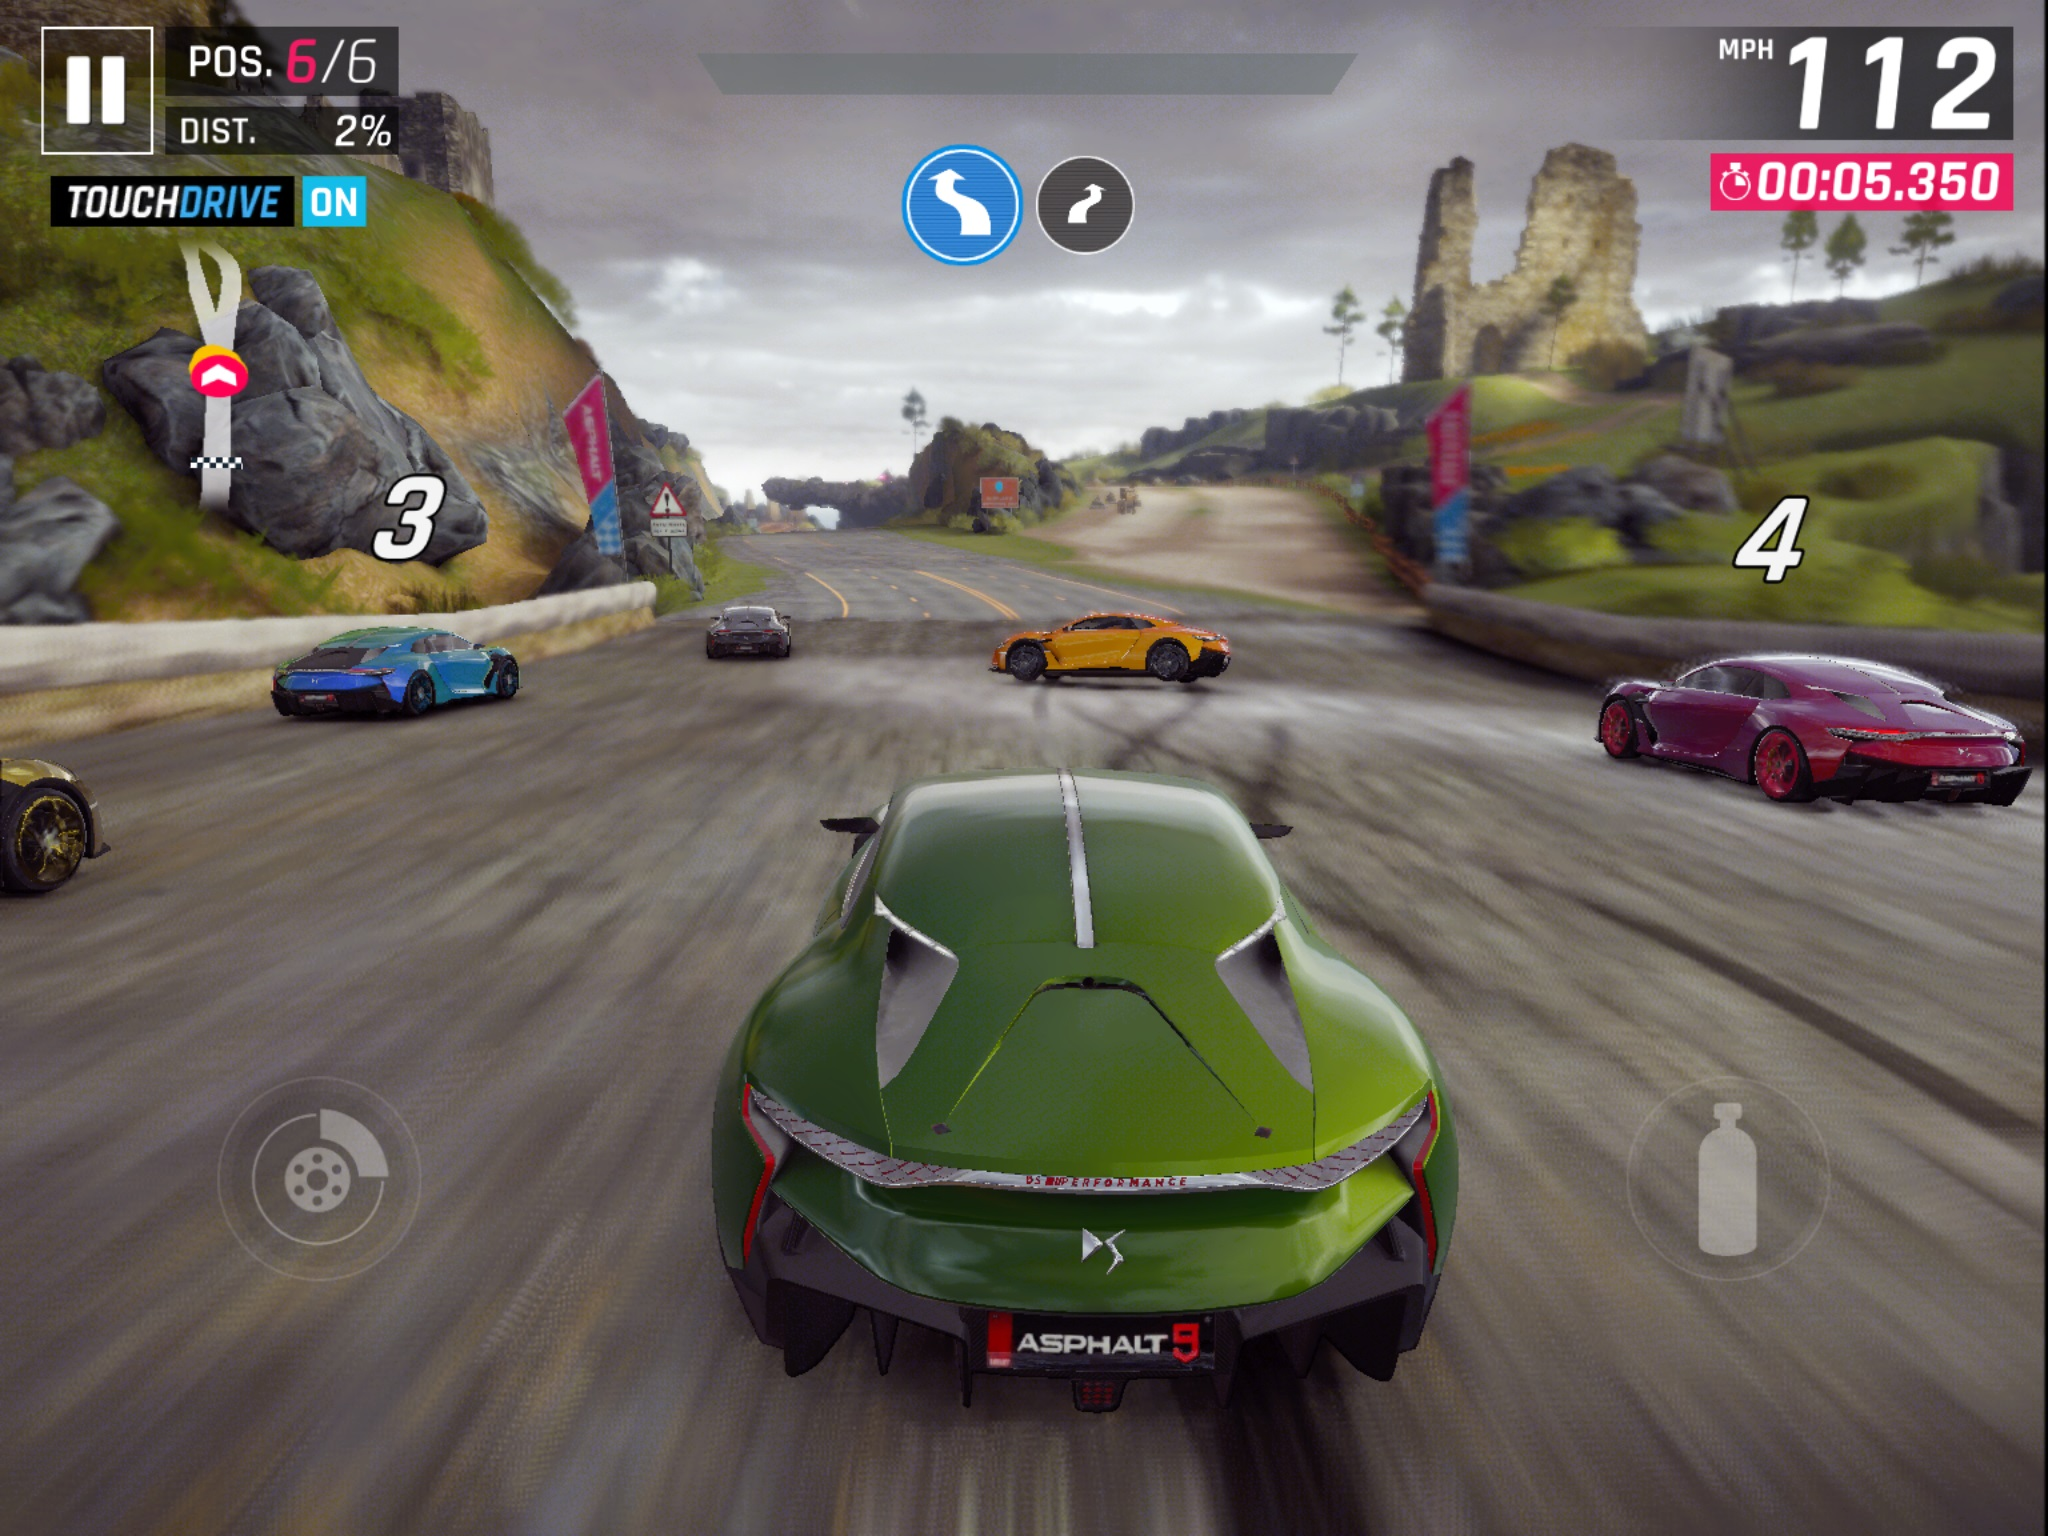 'Asphalt 9: Legends' Guide – Tips, Tricks and Cheats to Race Longer and Unlock More Cars for Free